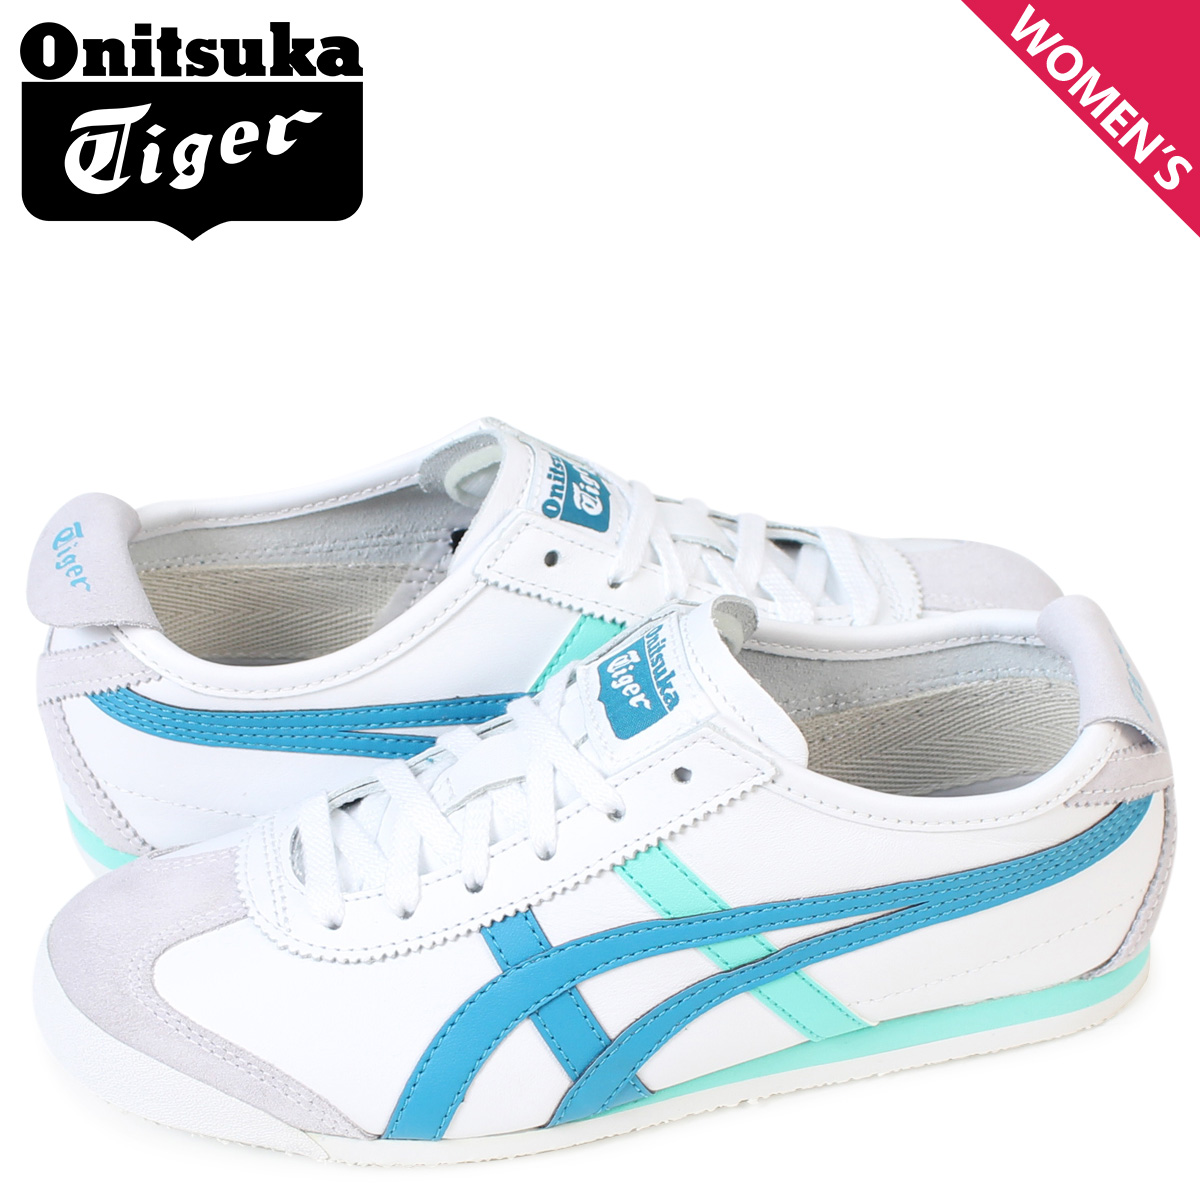 100% authentic 4a076 2597d Onitsuka Tiger Mexico 66 Onitsuka tiger MEXICO 66 Lady's sneakers ASICS  HL474-0156 shoes white [load planned Shinnyu load in reservation product  9/26 ...